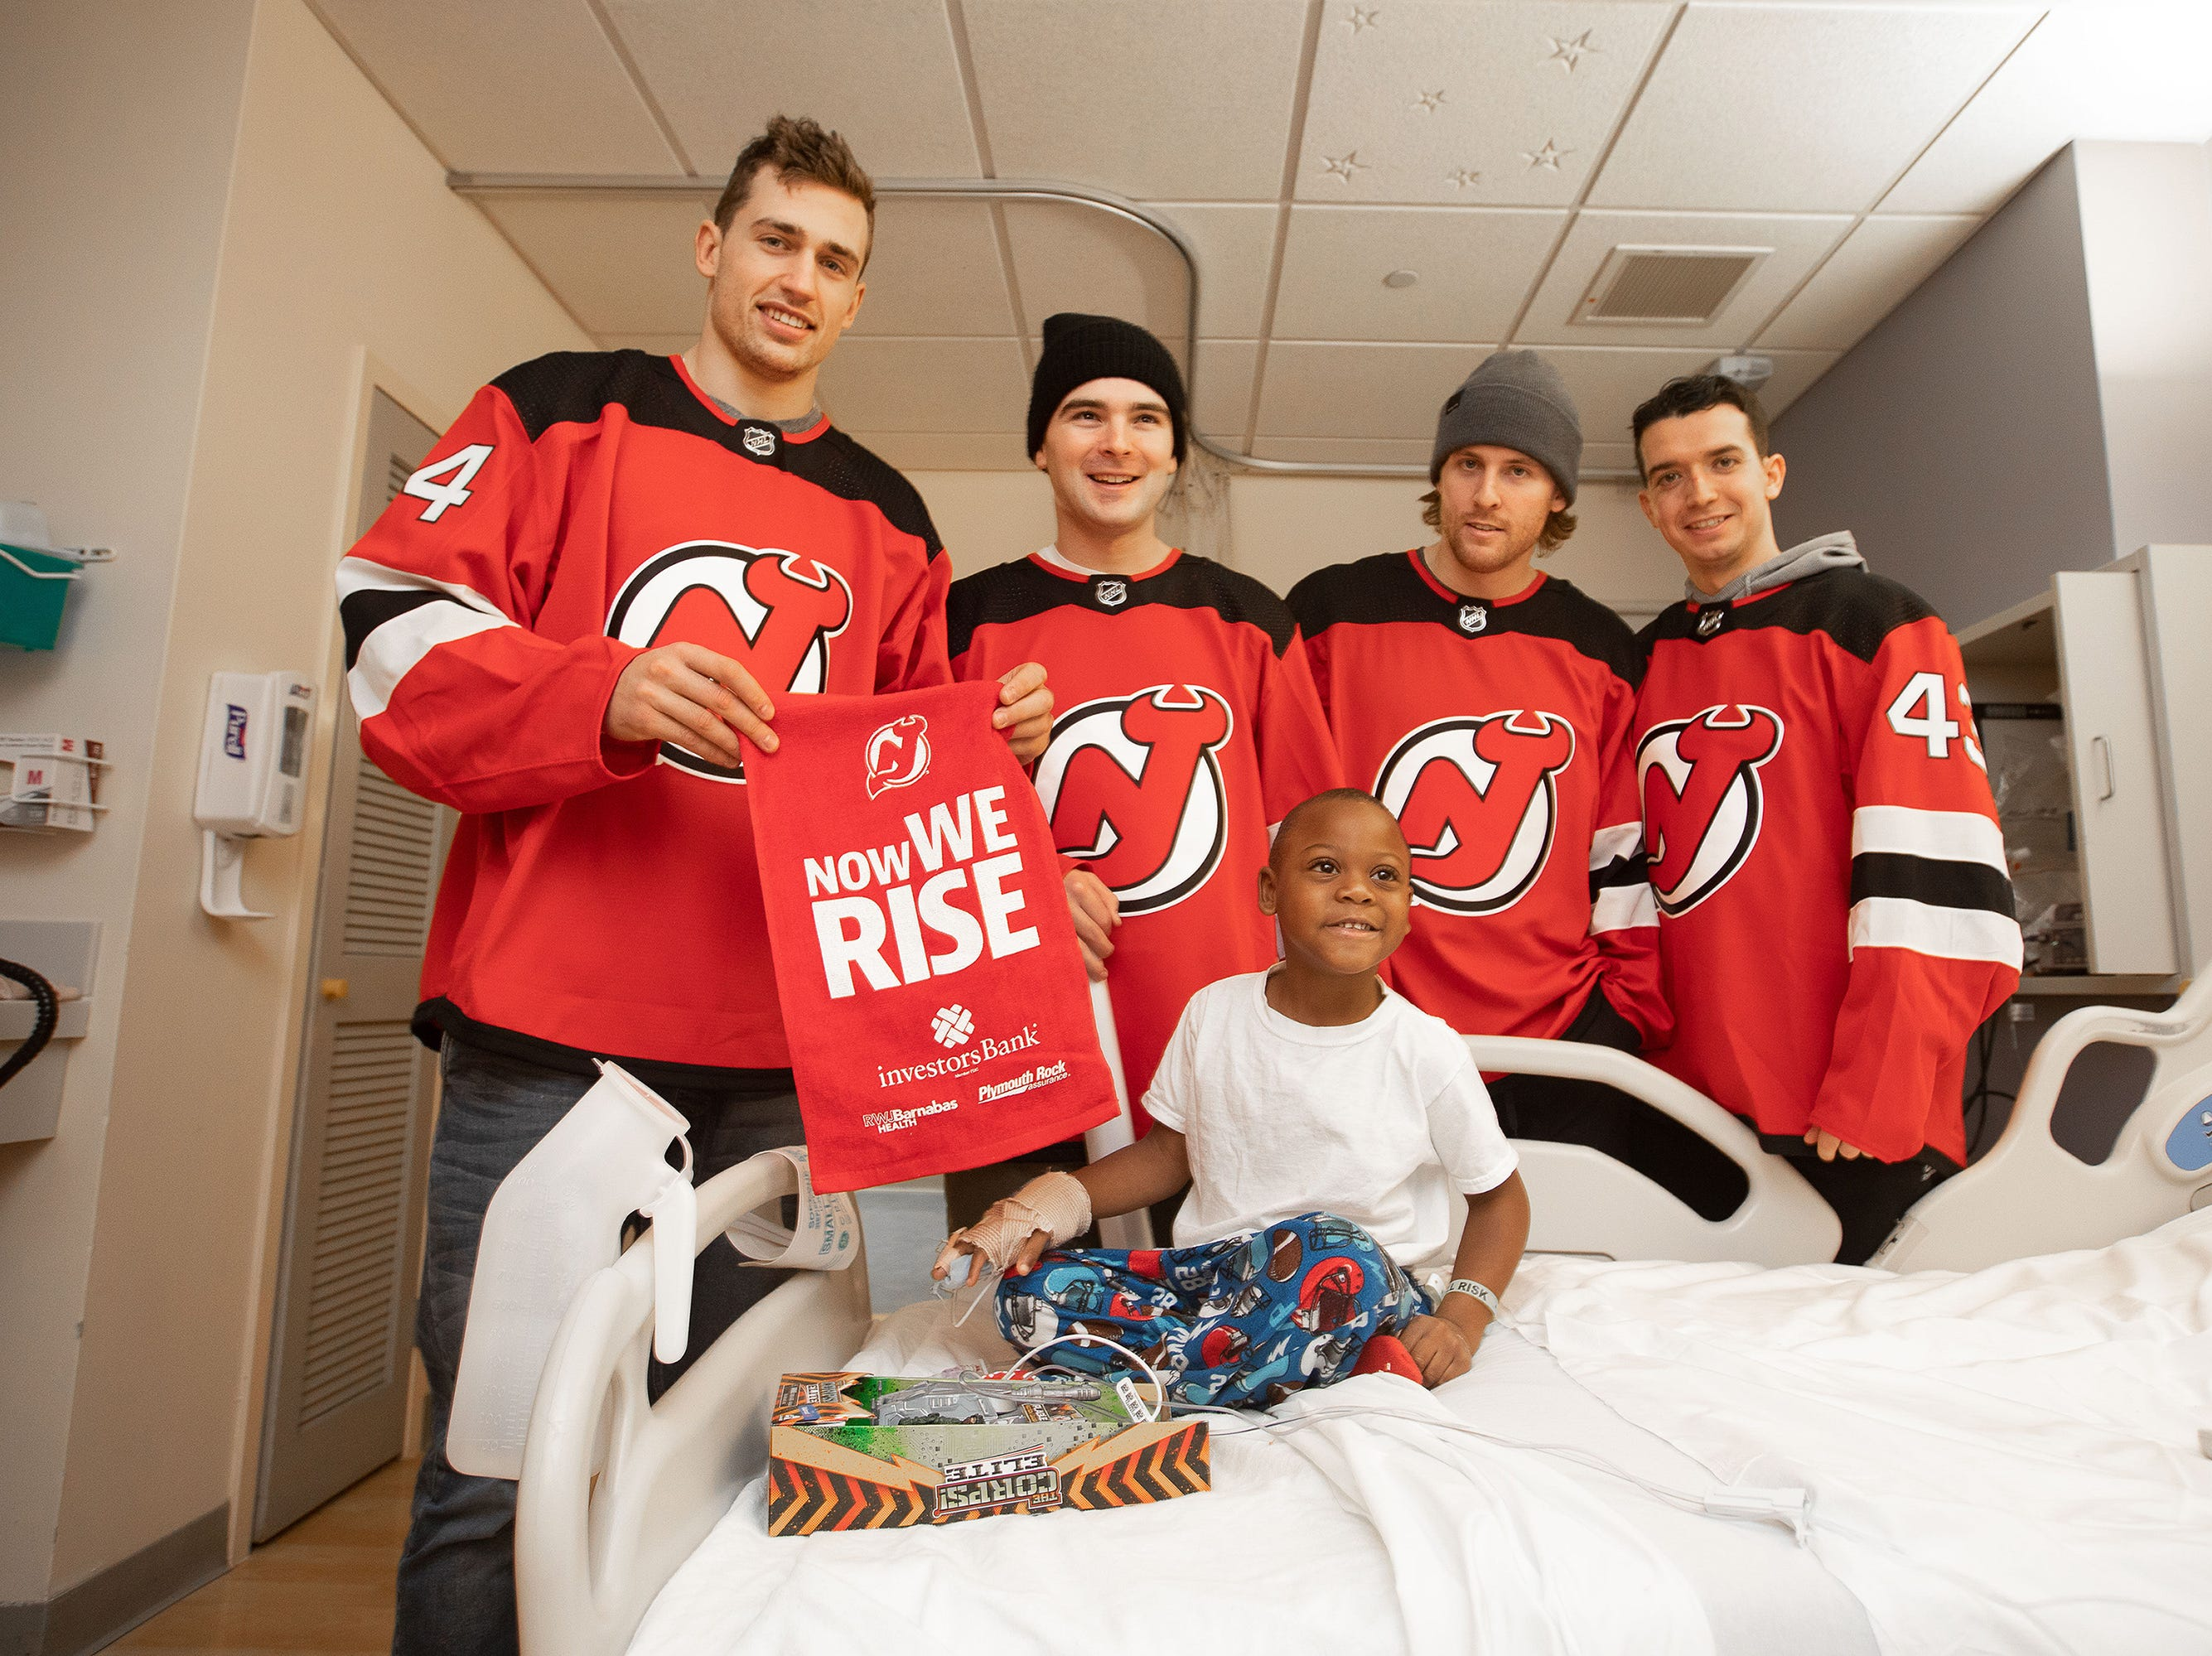 Patients and staff at Robert Wood Johnson University Hospital and Bristol Meyers Squibb Hospital in New Brunswick enjoyed some holiday cheer on Dec. 17 as New Jersey Devils Will Butcher, Blake Coleman, Brett Seney and Miles Wood spent the afternoon visiting with patients, delivering toys, signing autographs and taking photos.